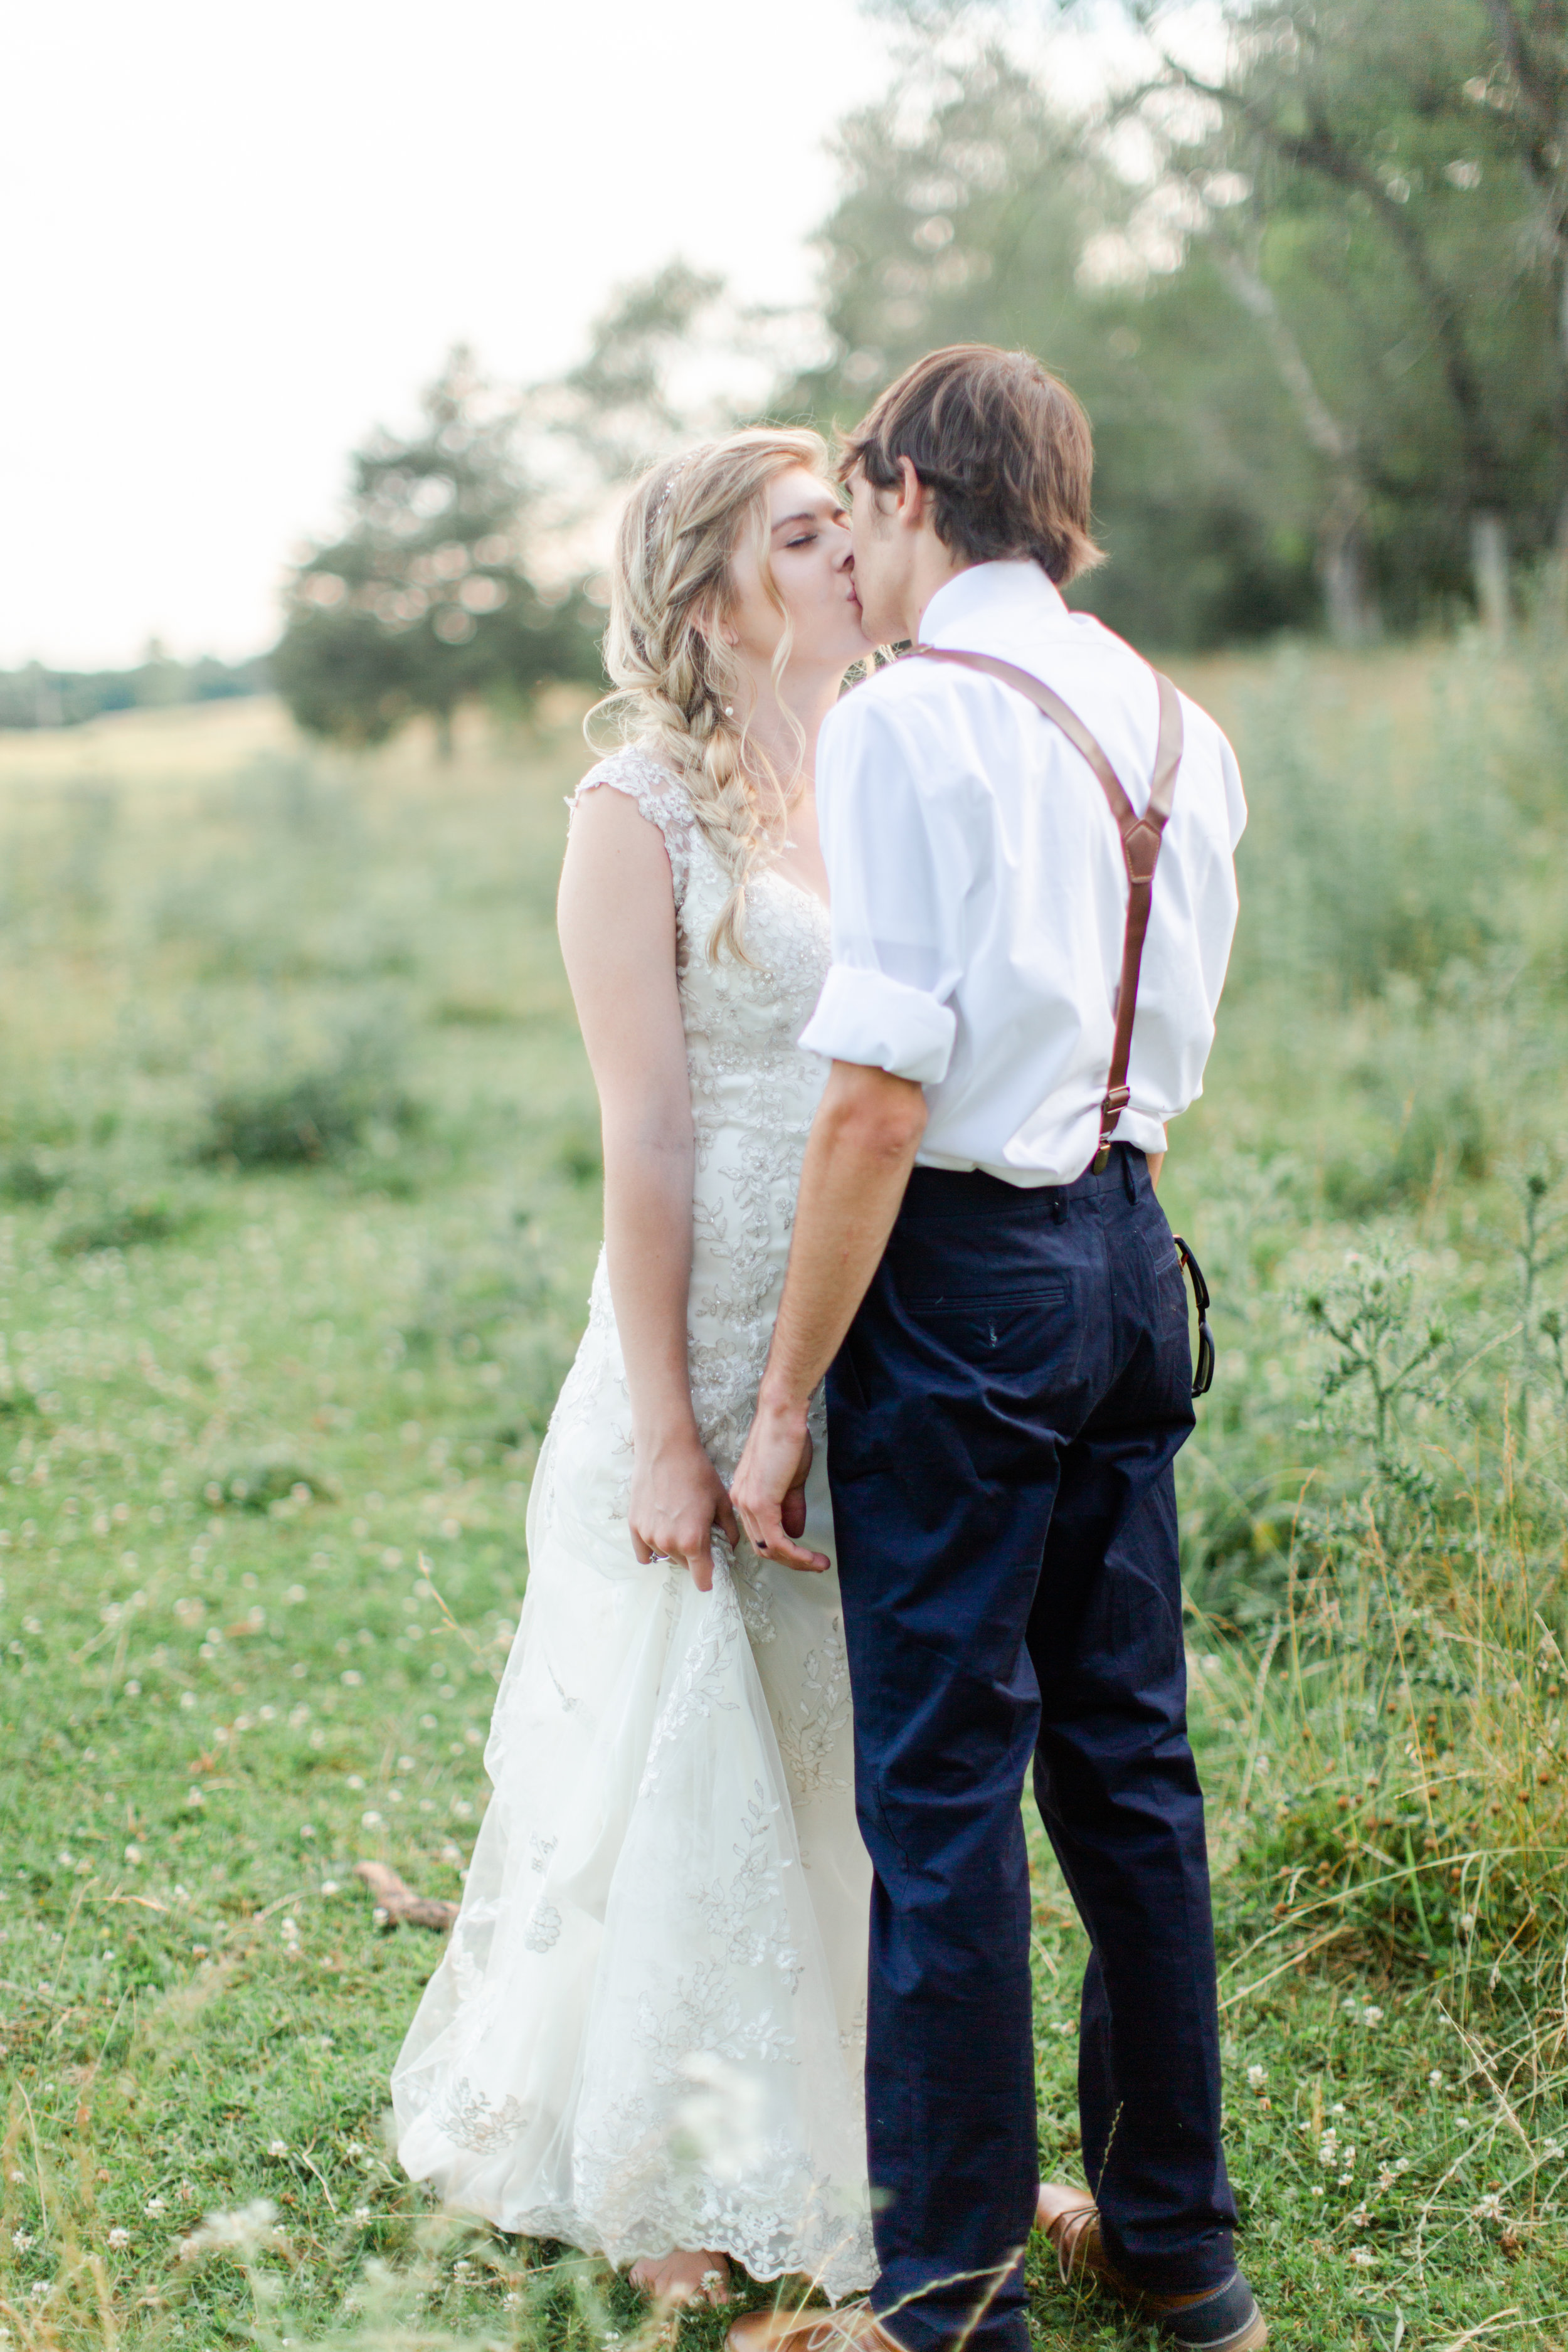 ivory-and-beau-weddings-savannah-bridal-boutique-southern-florist-weddings-bridal-shop-down-for-the-gown-image7.jpeg